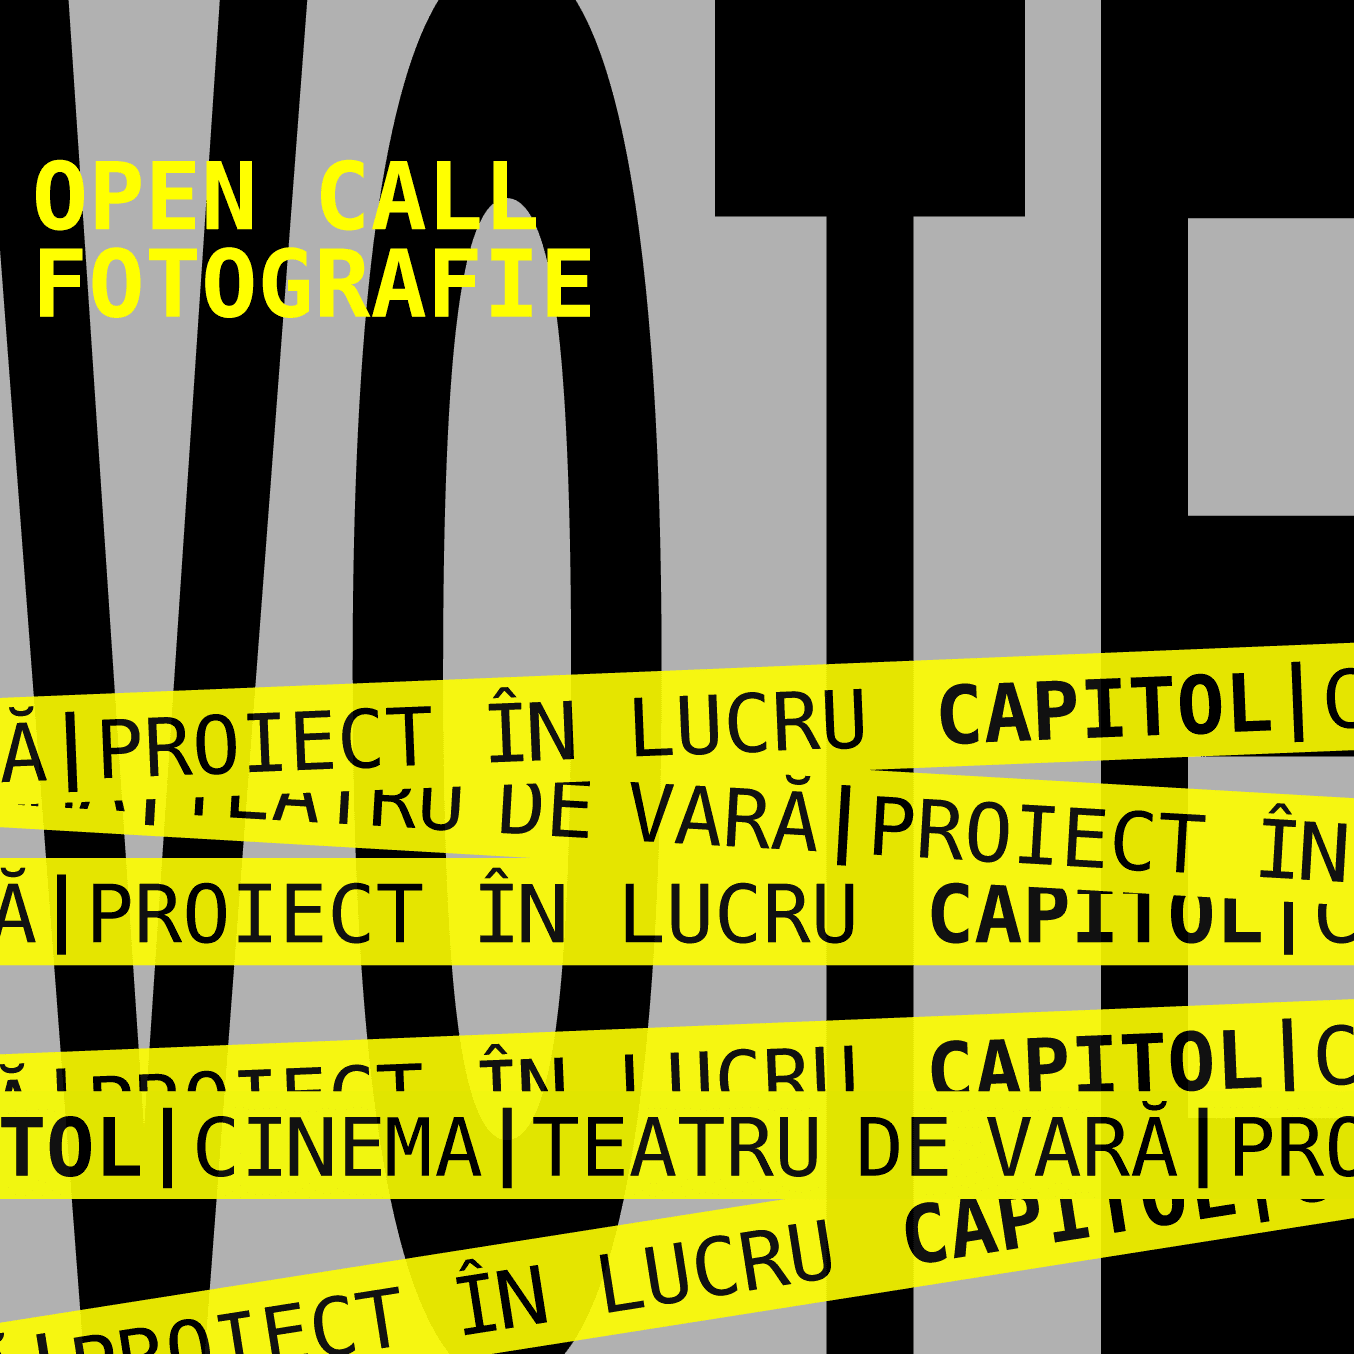 CAPITOL vote open call fotografie